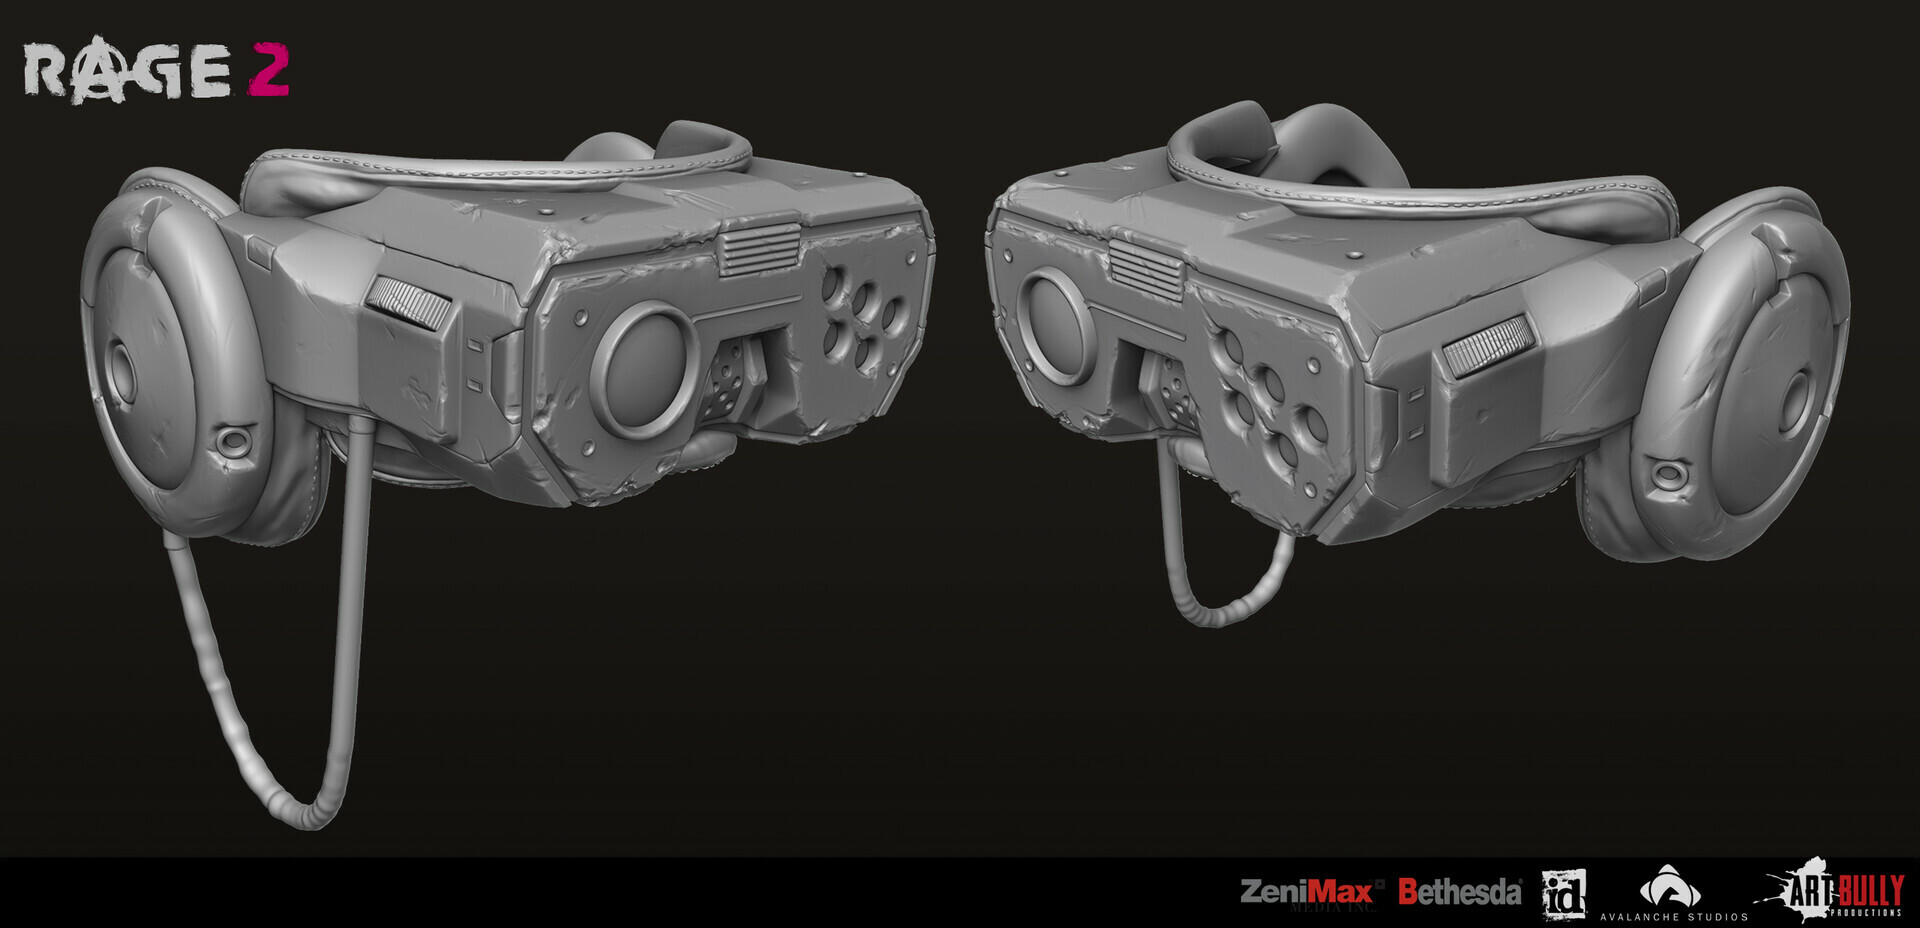 Patrick nuckels art bully productions civilian gear set 03 hex 03 cyberpunk goggles render